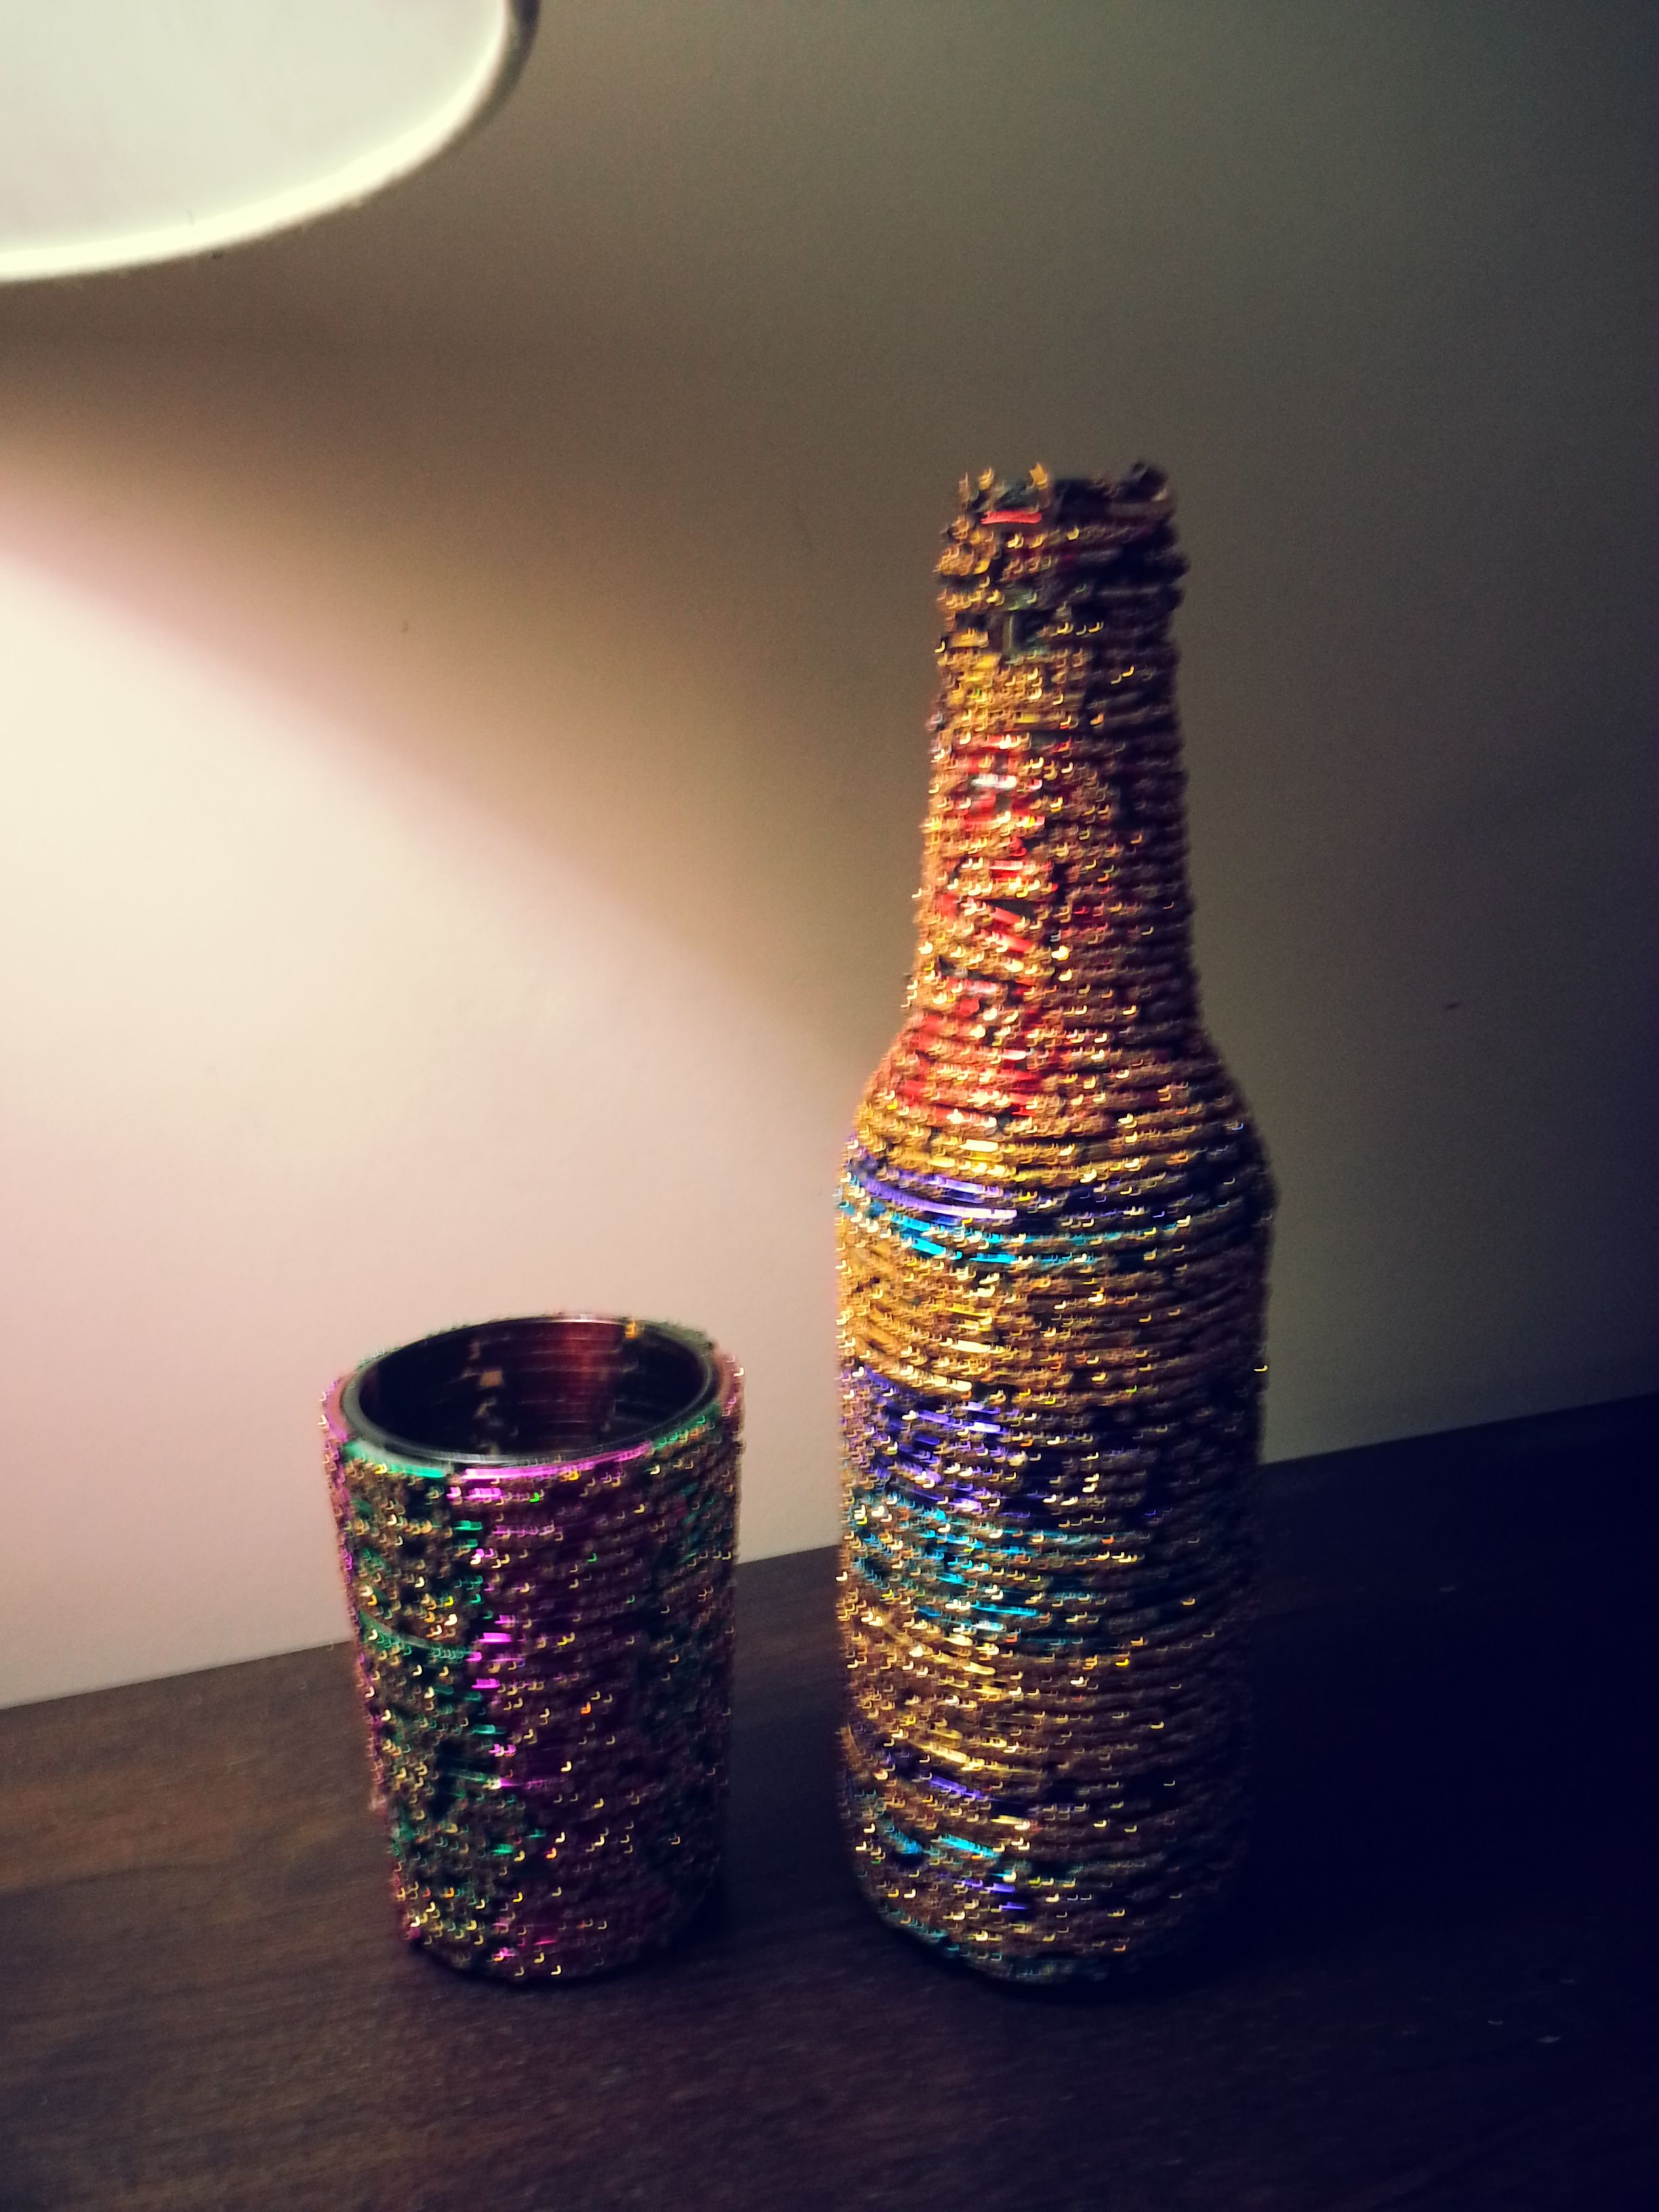 9 waste bangles art ideas activity for joy pinterest